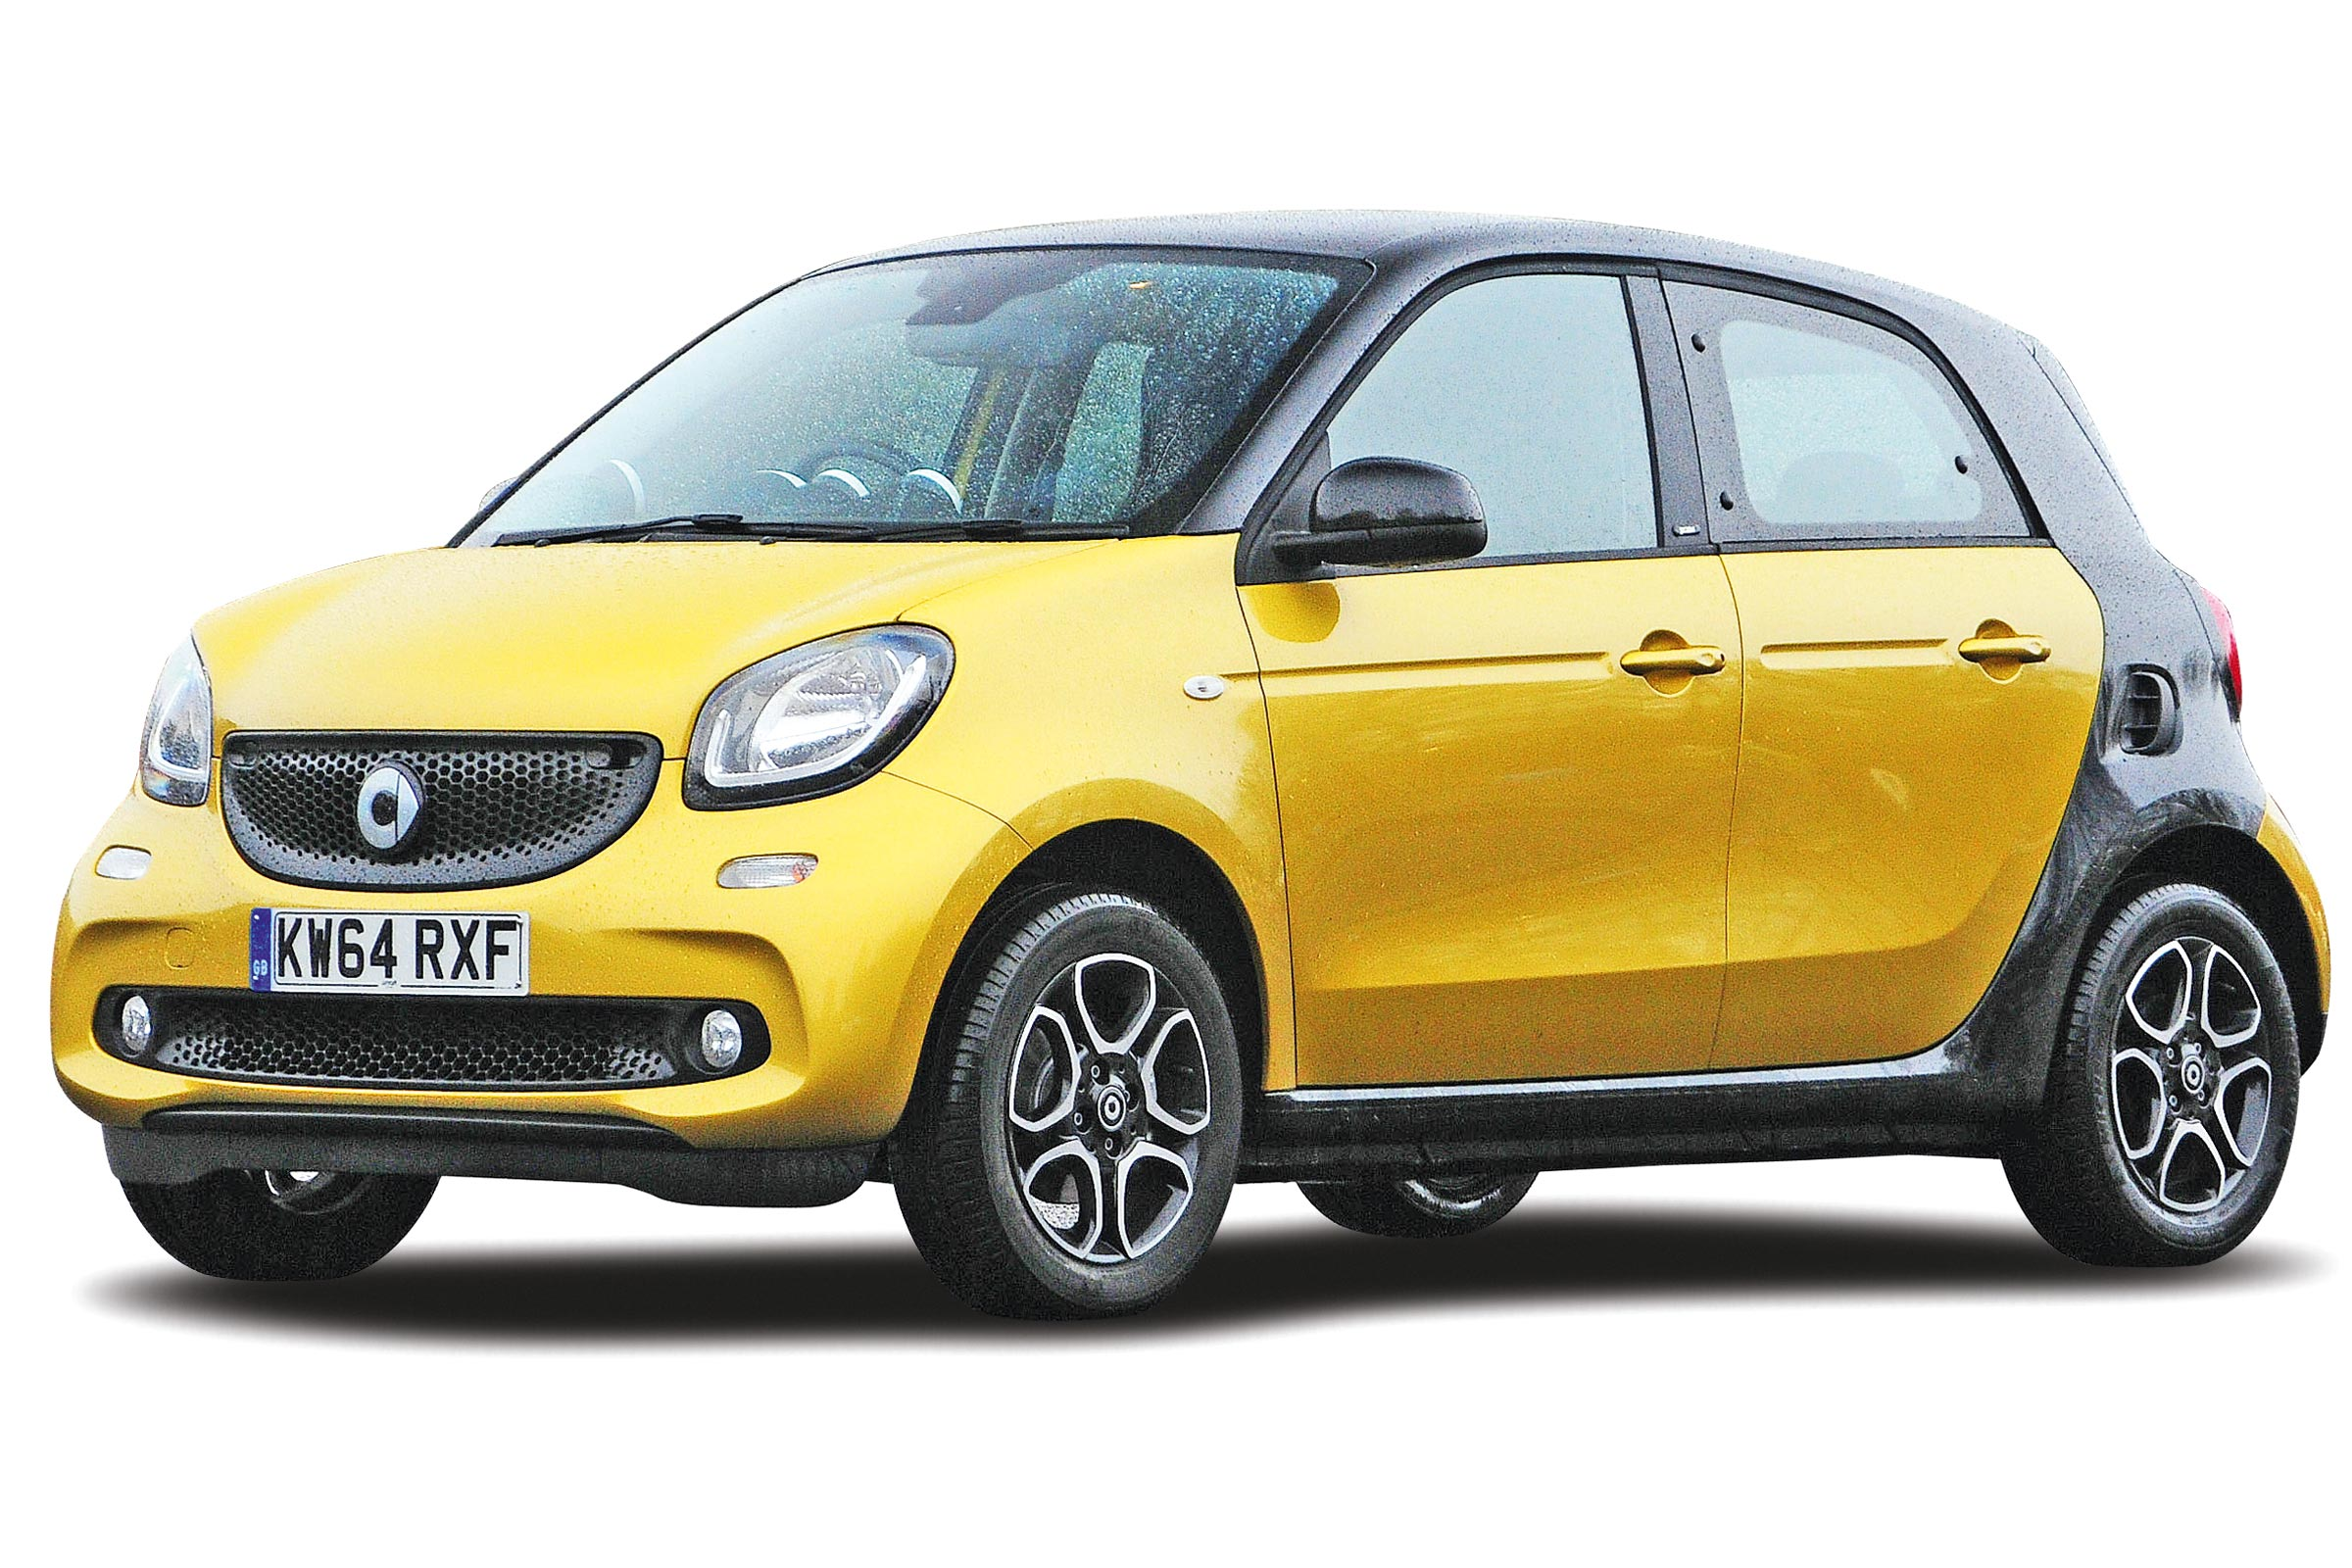 smart forfour hatchback owner reviews mpg problems reliability performance